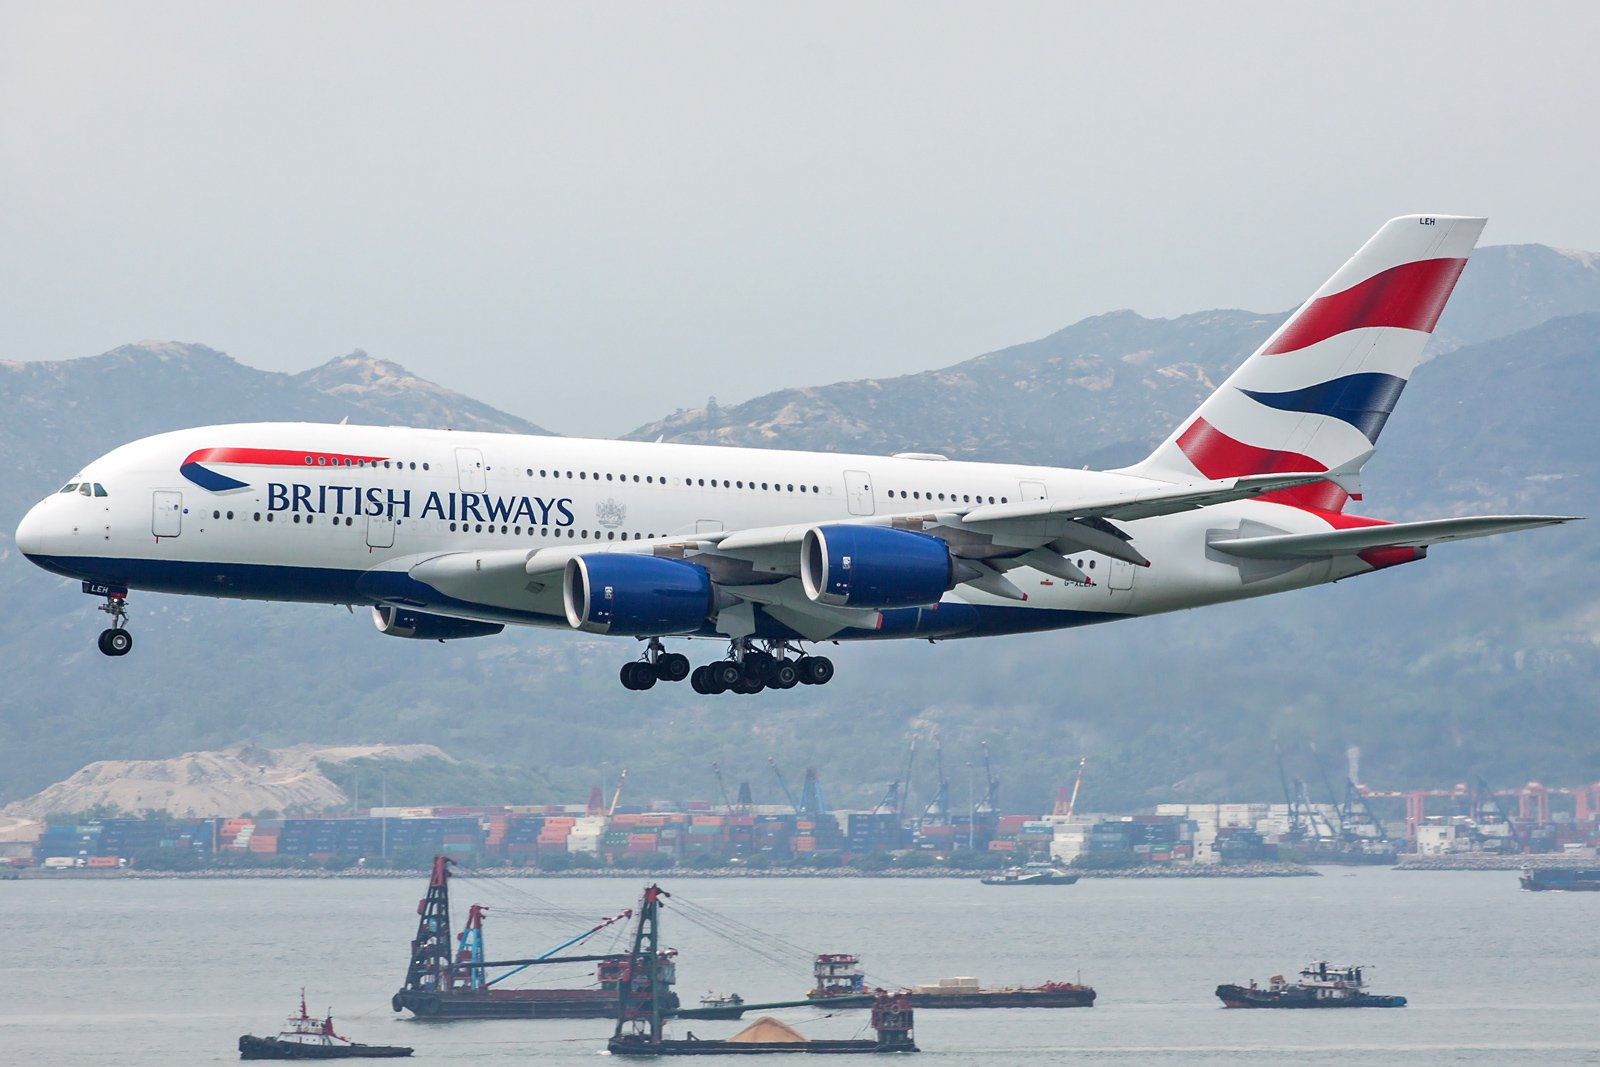 British Airways Airbus A380-841 G-XLEH